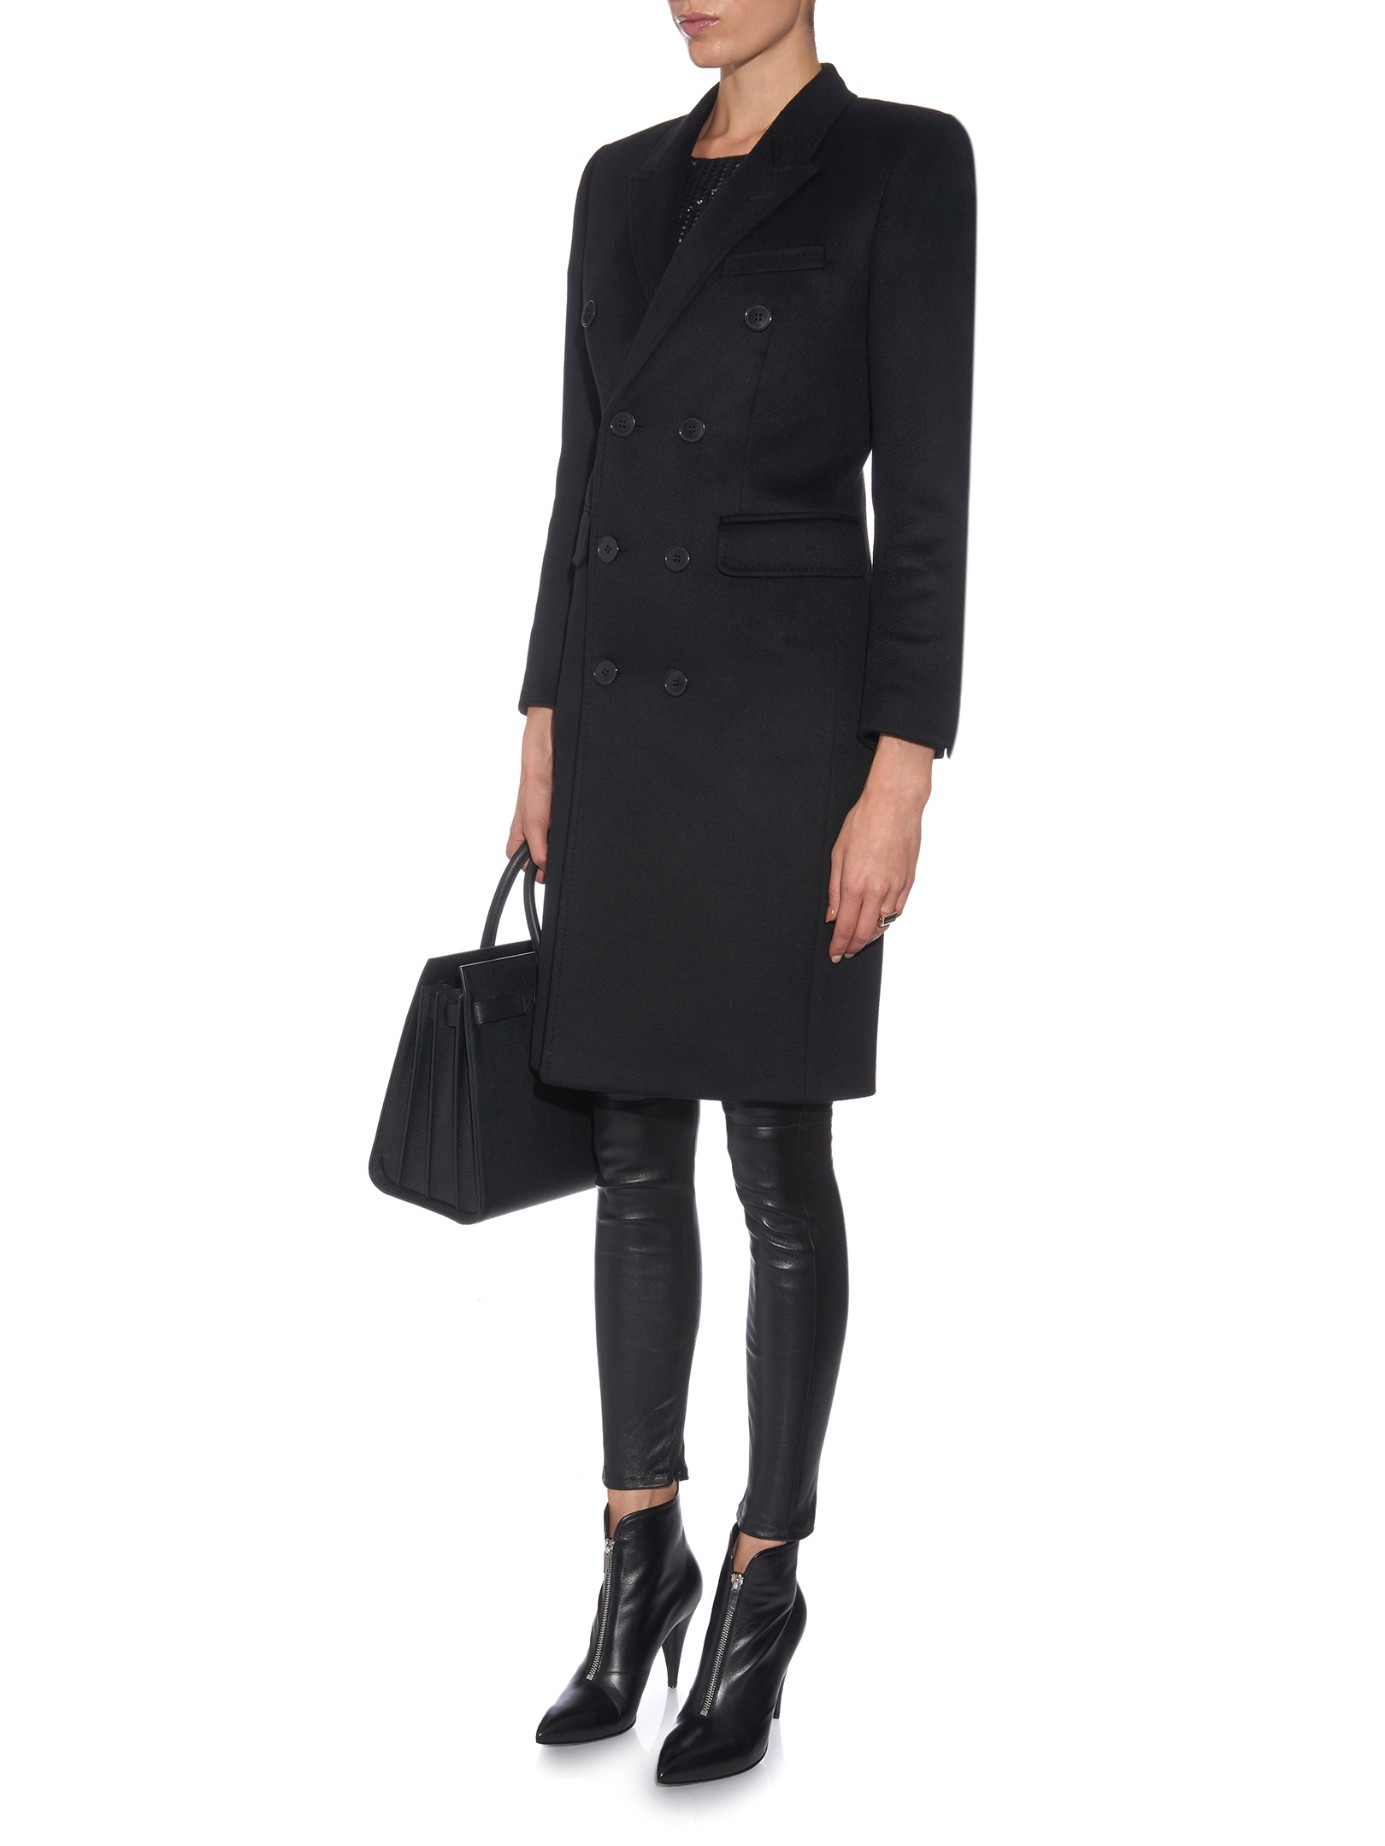 0ed056e5e3a95 Lyst - Saint Laurent Double-breasted Cashmere Coat in Black